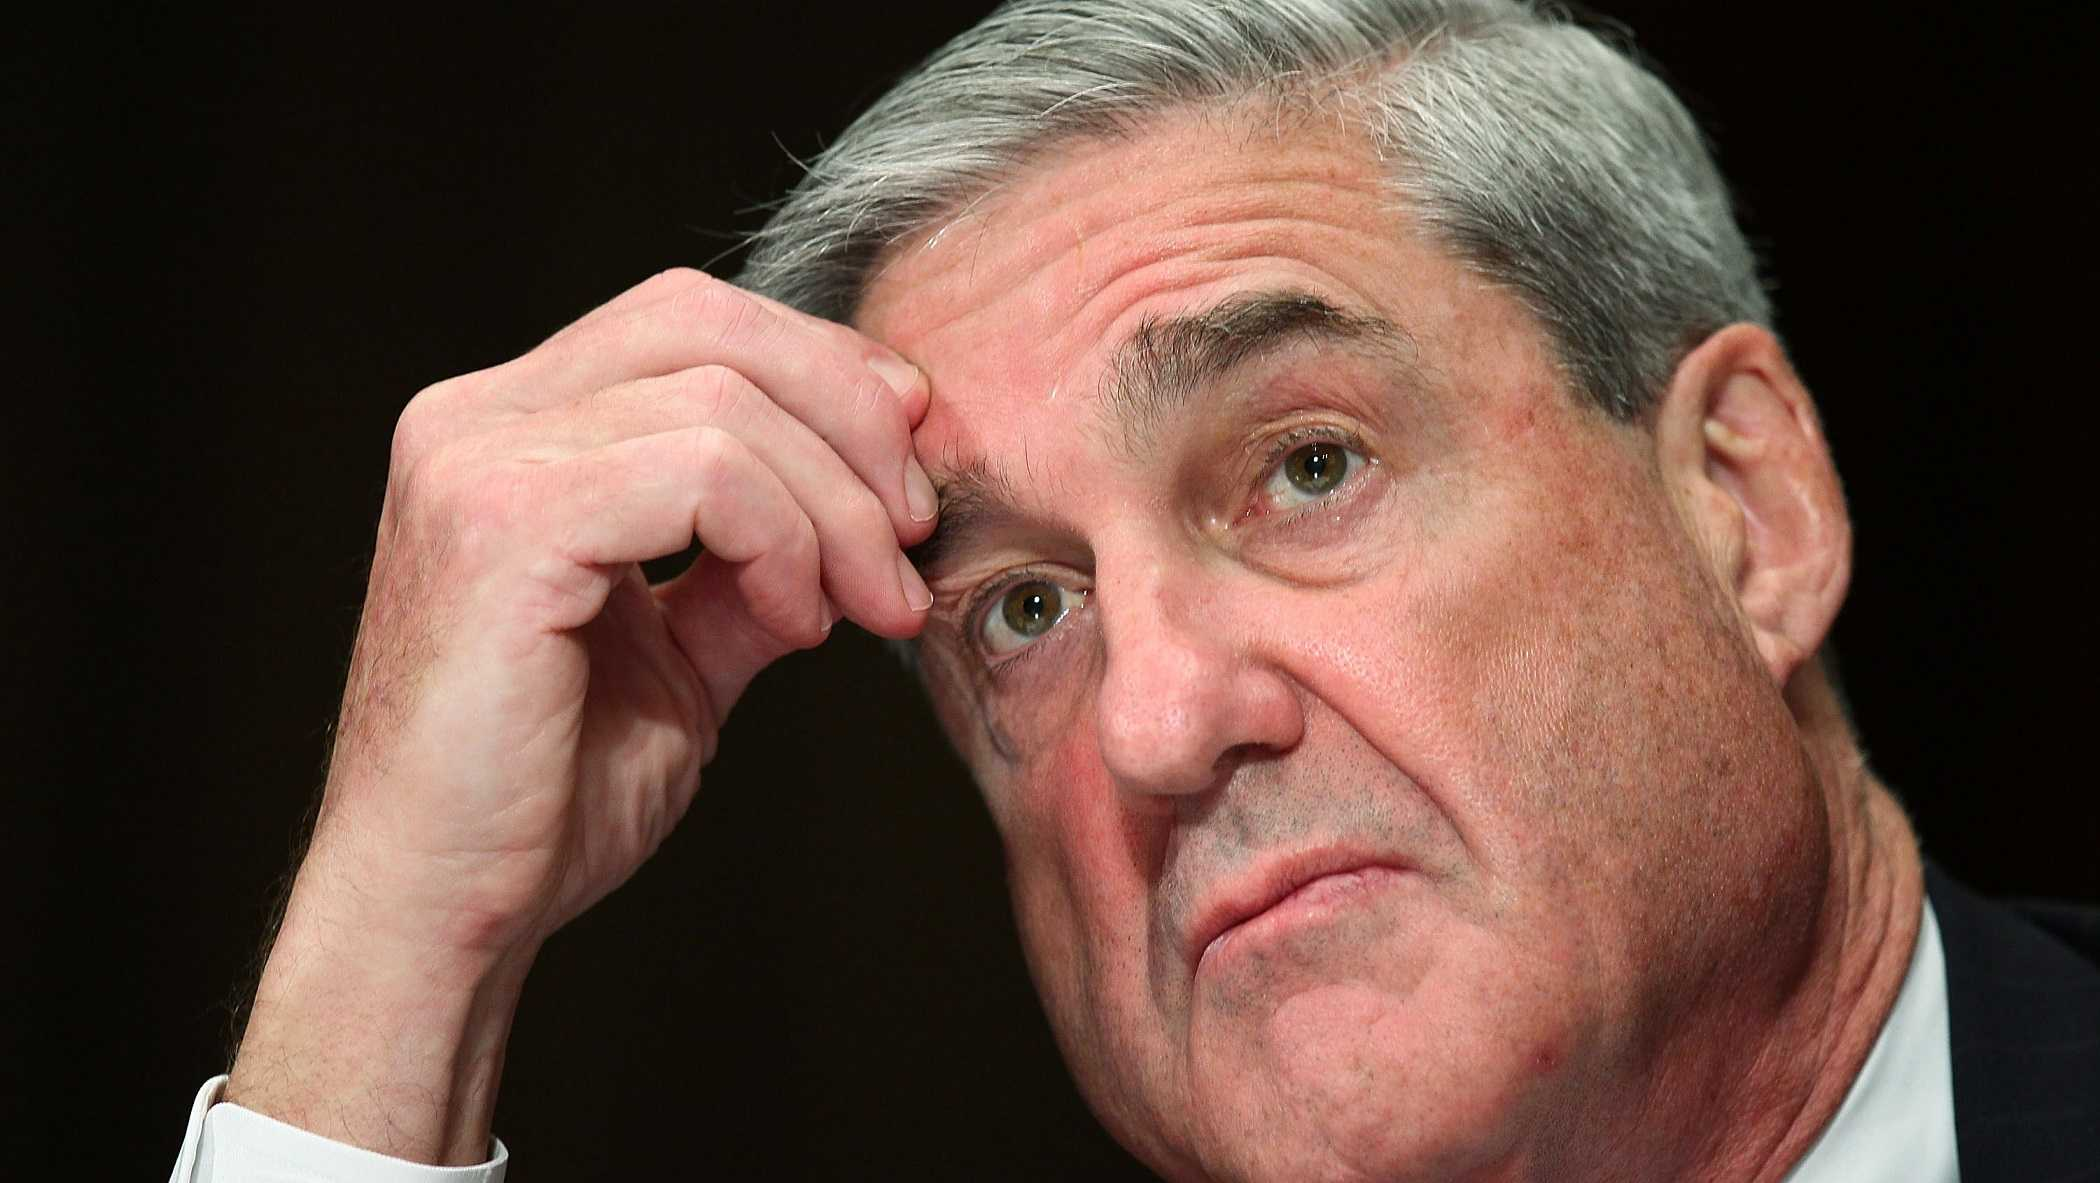 FBI Director Robert Mueller testifies during a hearing before the Senate Judiciary Committee on July 28, 2010 on Capitol Hill.